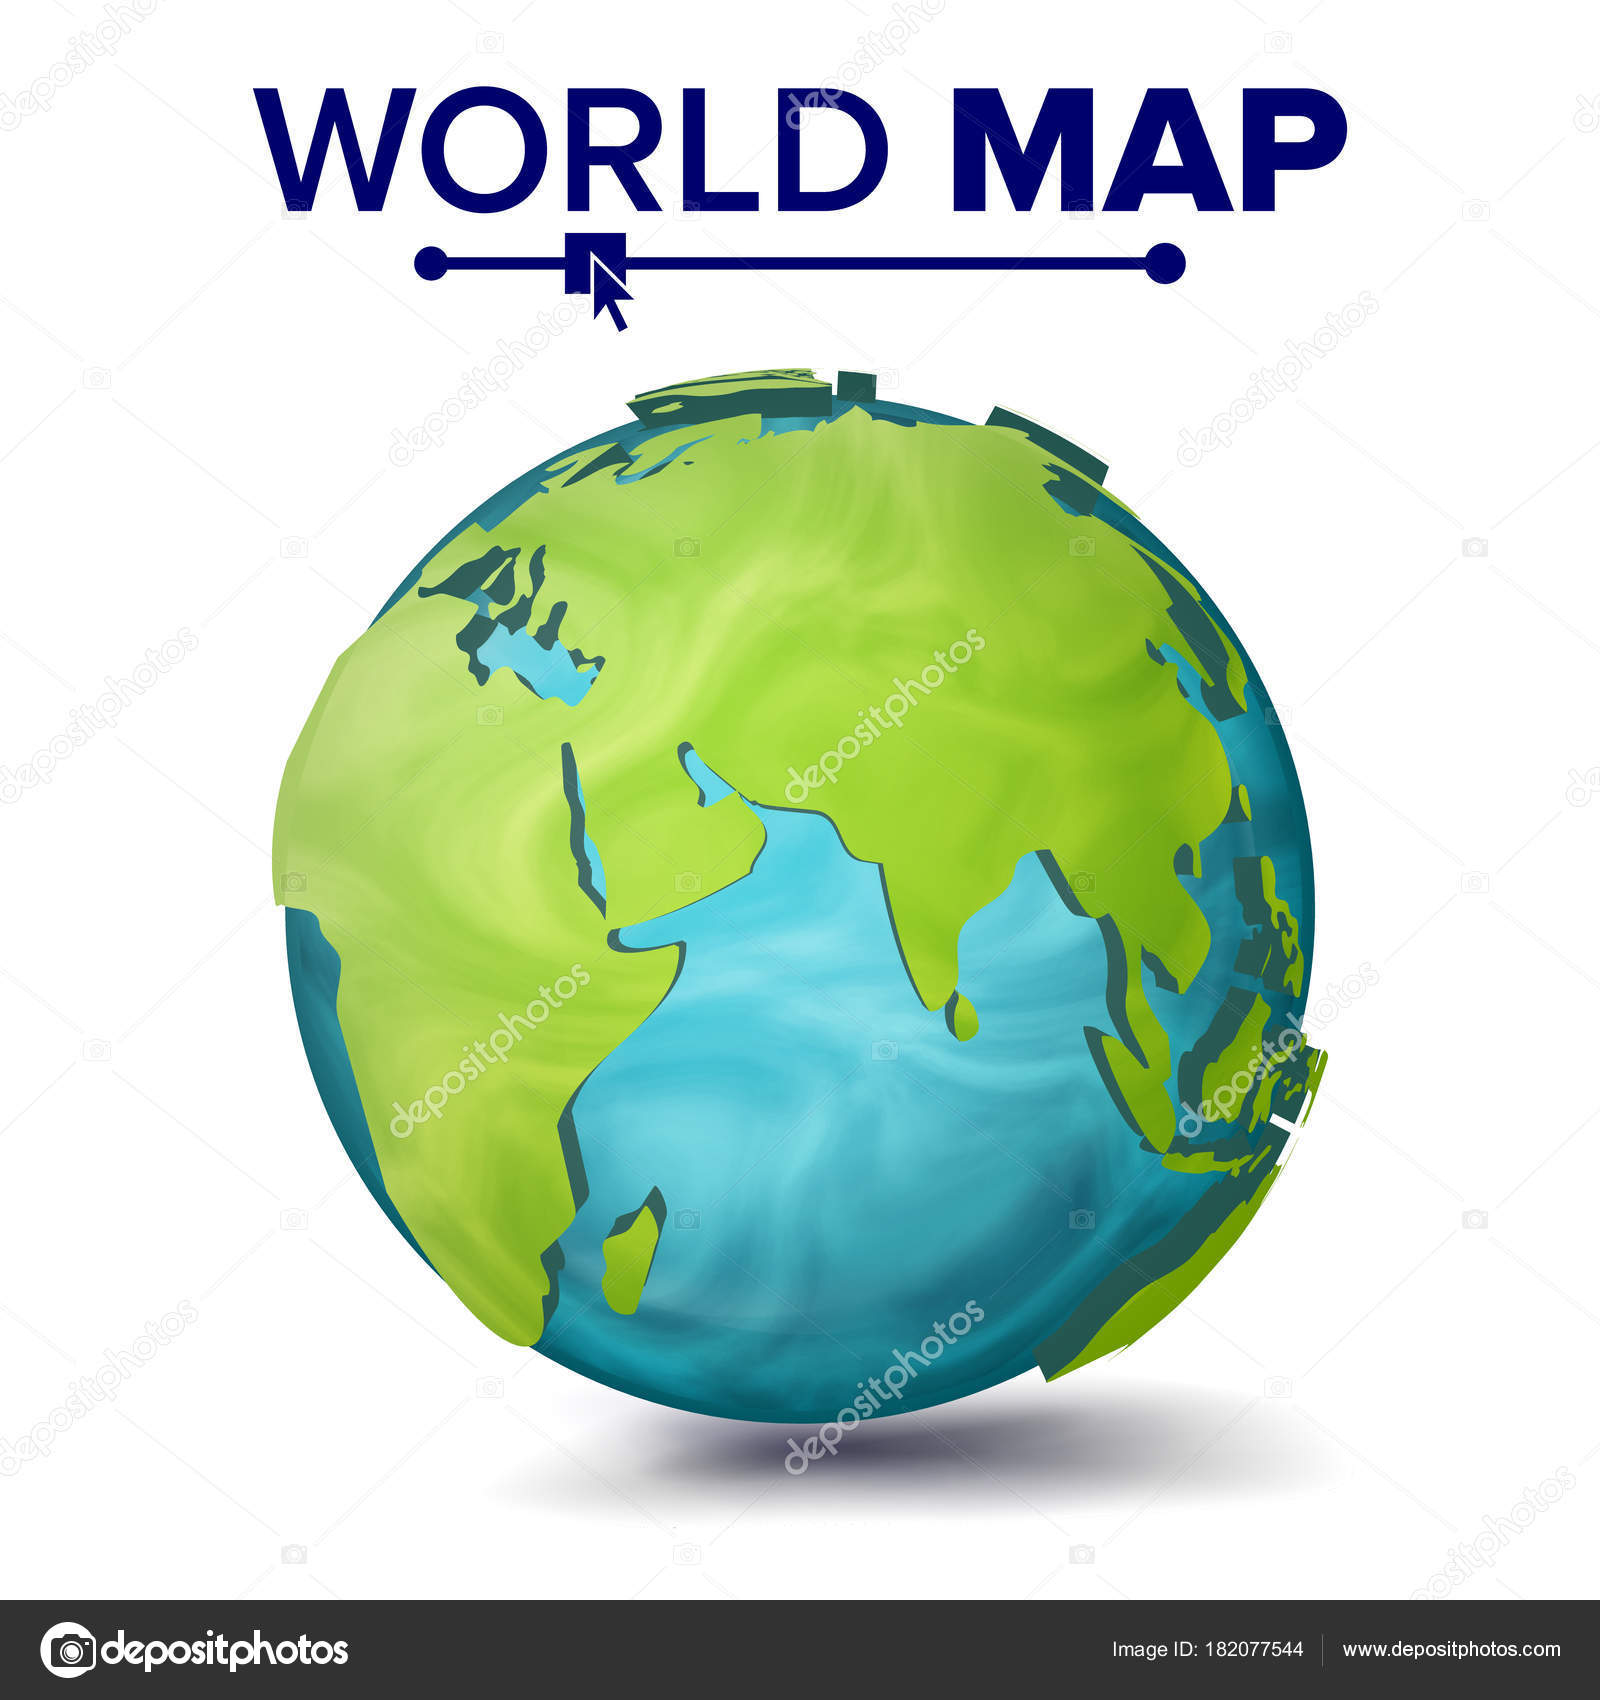 World map vector 3d planet sphere earth with continents eurasia world map vector 3d planet sphere earth with continents eurasia australia africa illustration vector by pikepicture gumiabroncs Image collections